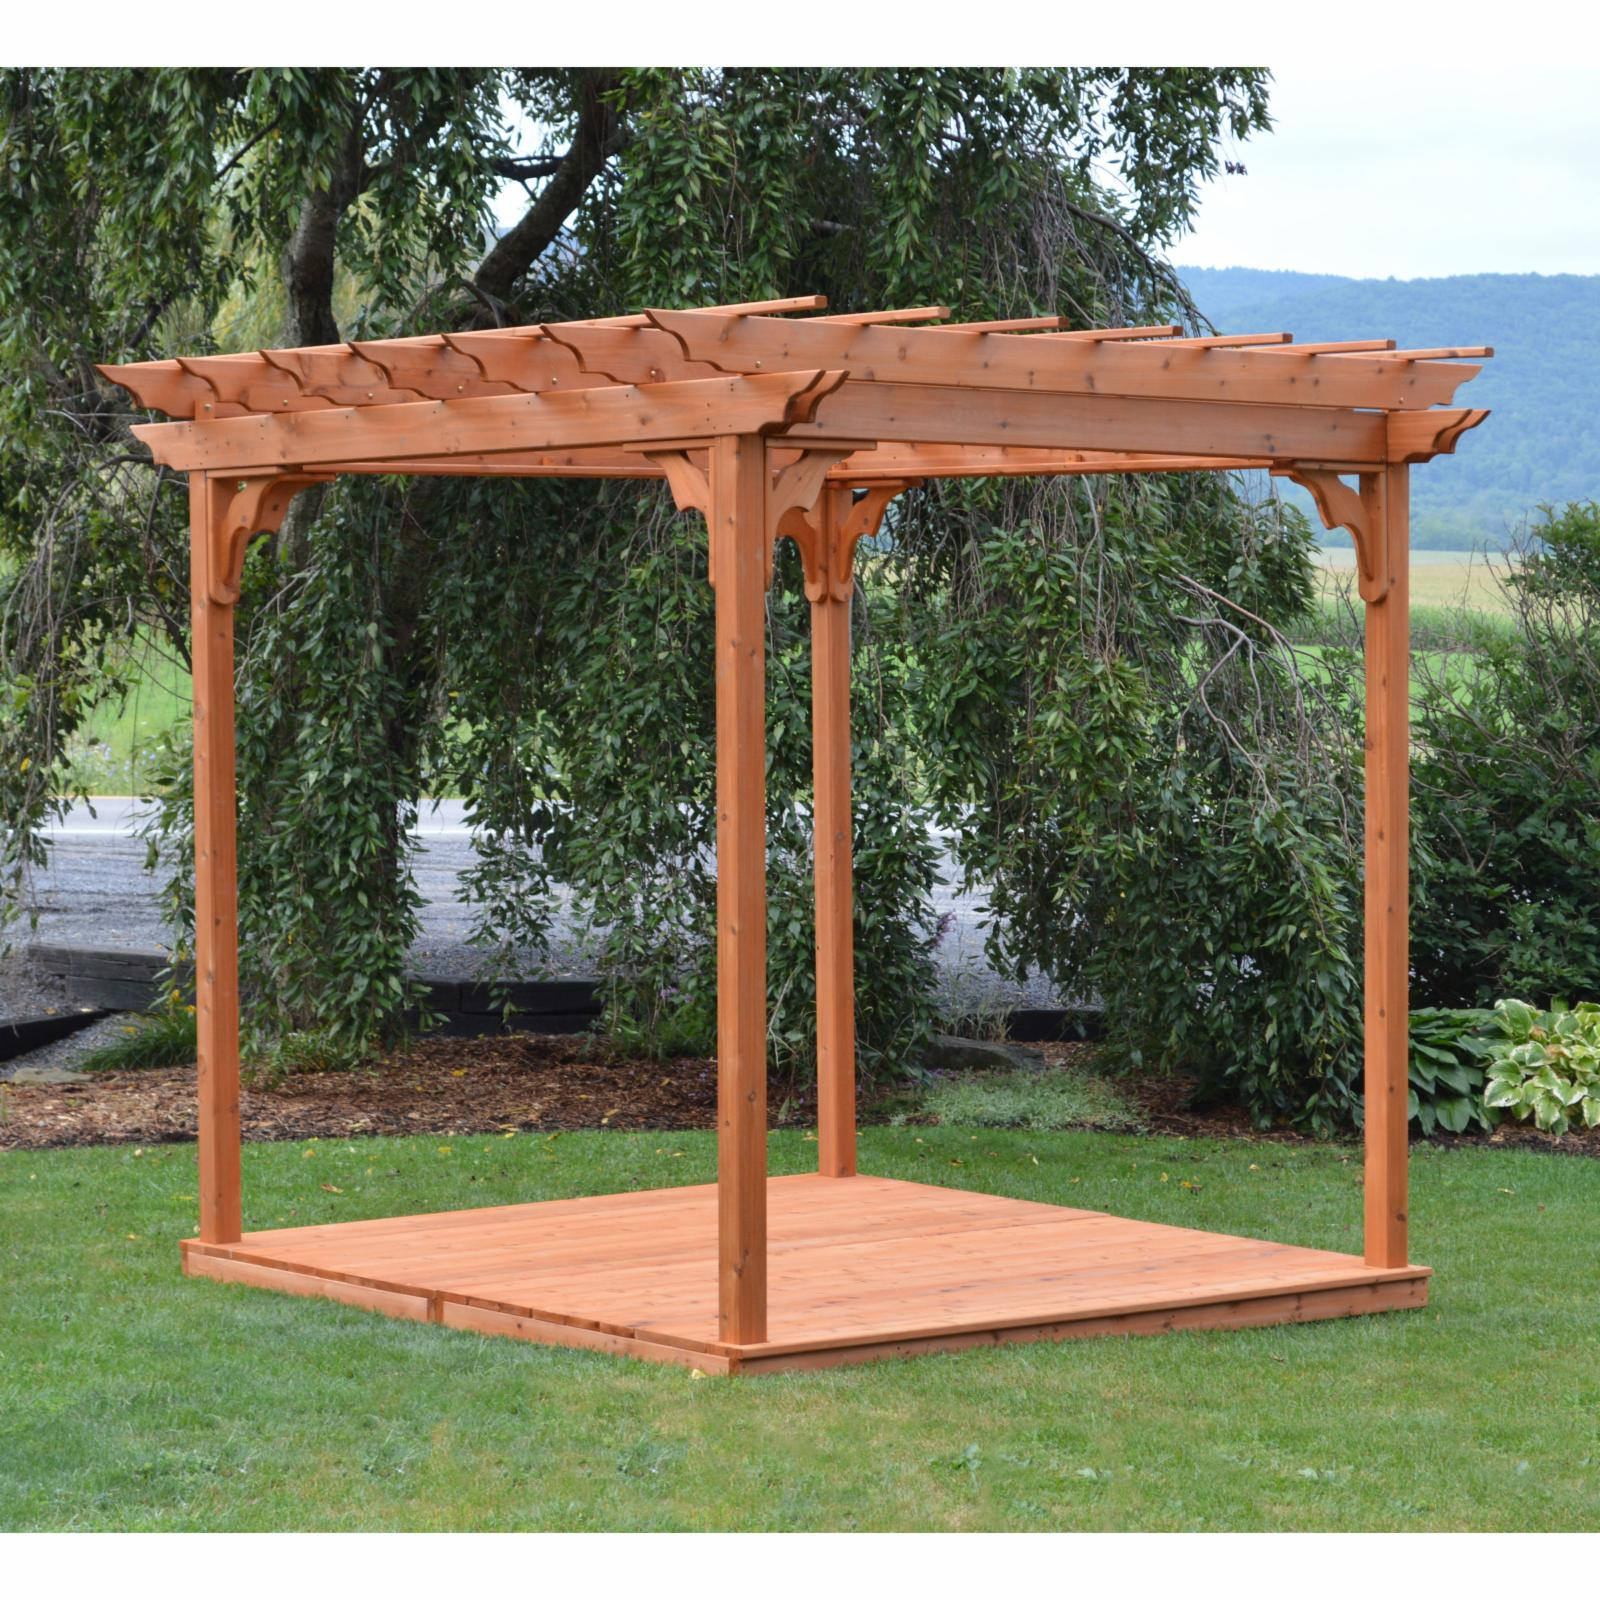 A & L Furniture Western Red Cedar Pergola With Deck and Swing Hangers - 706C-UNFINISHED